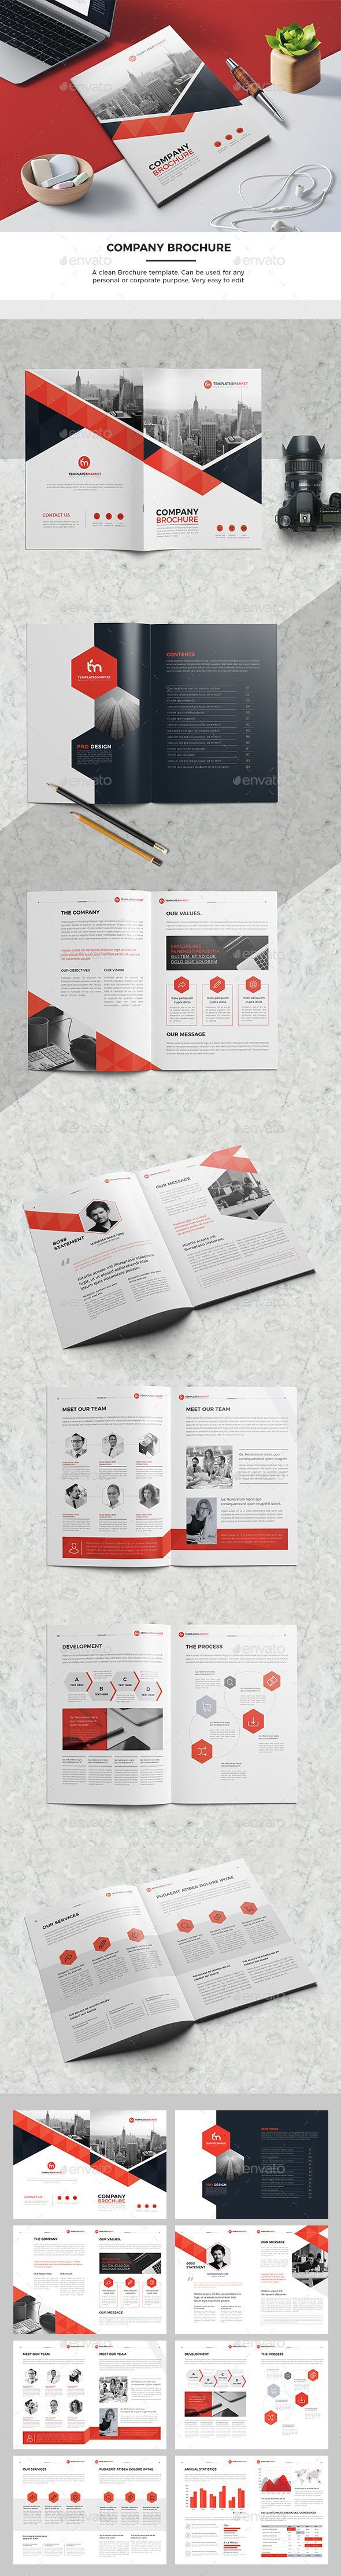 TM Company Brochure Template InDesign INDD